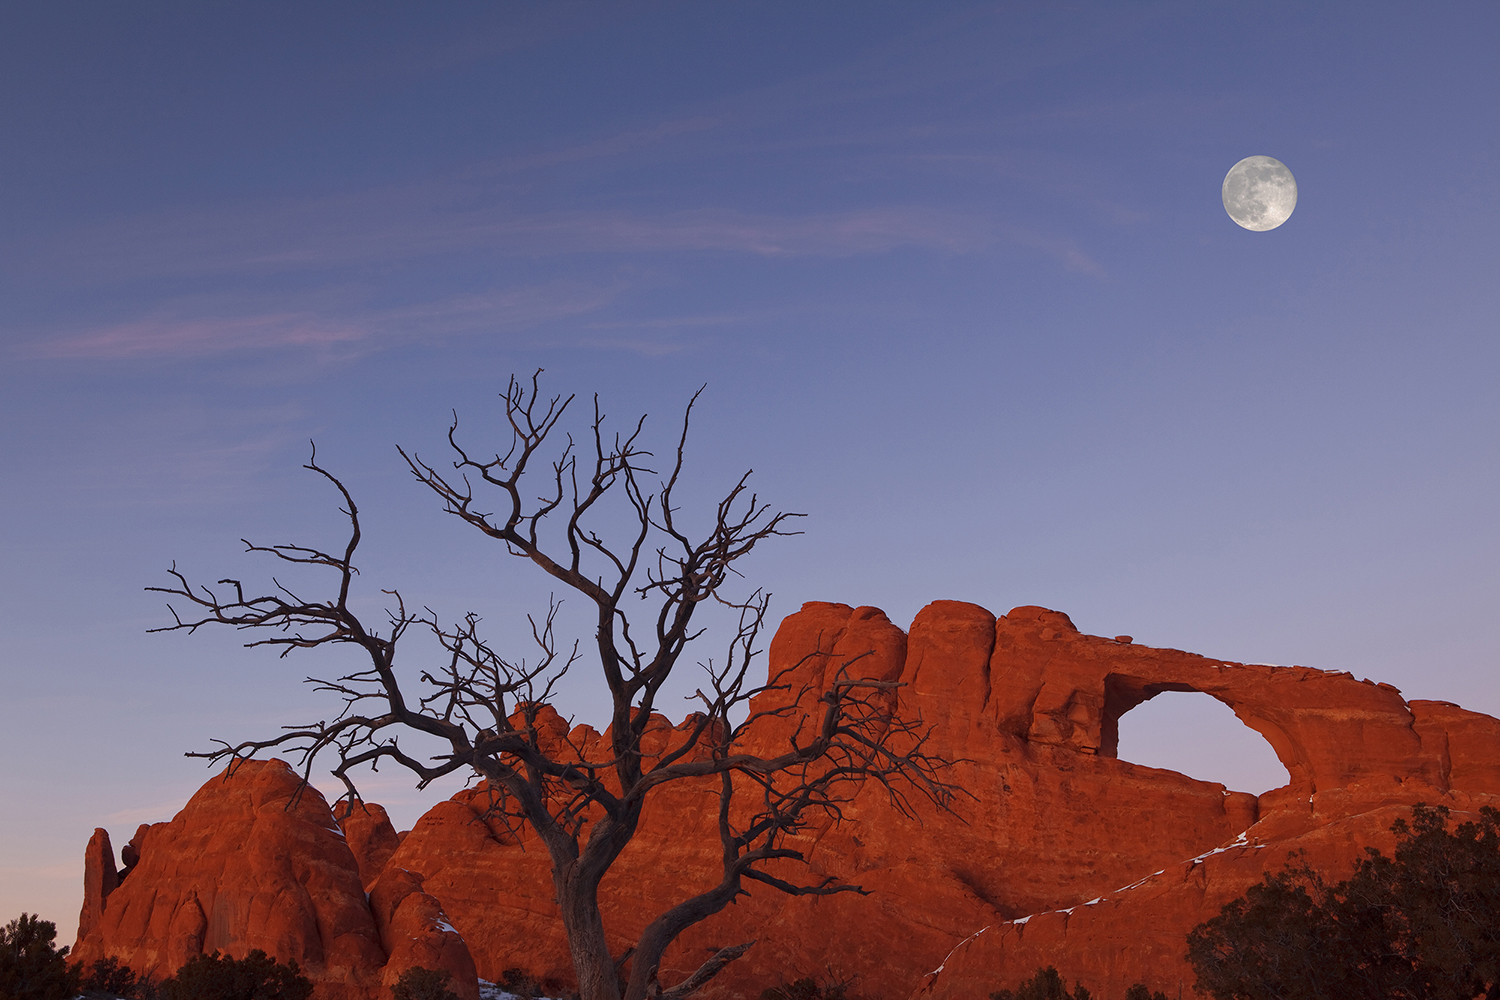 Skyline Arch and Full Moon, Arches National Park, Moab, Utah, USA